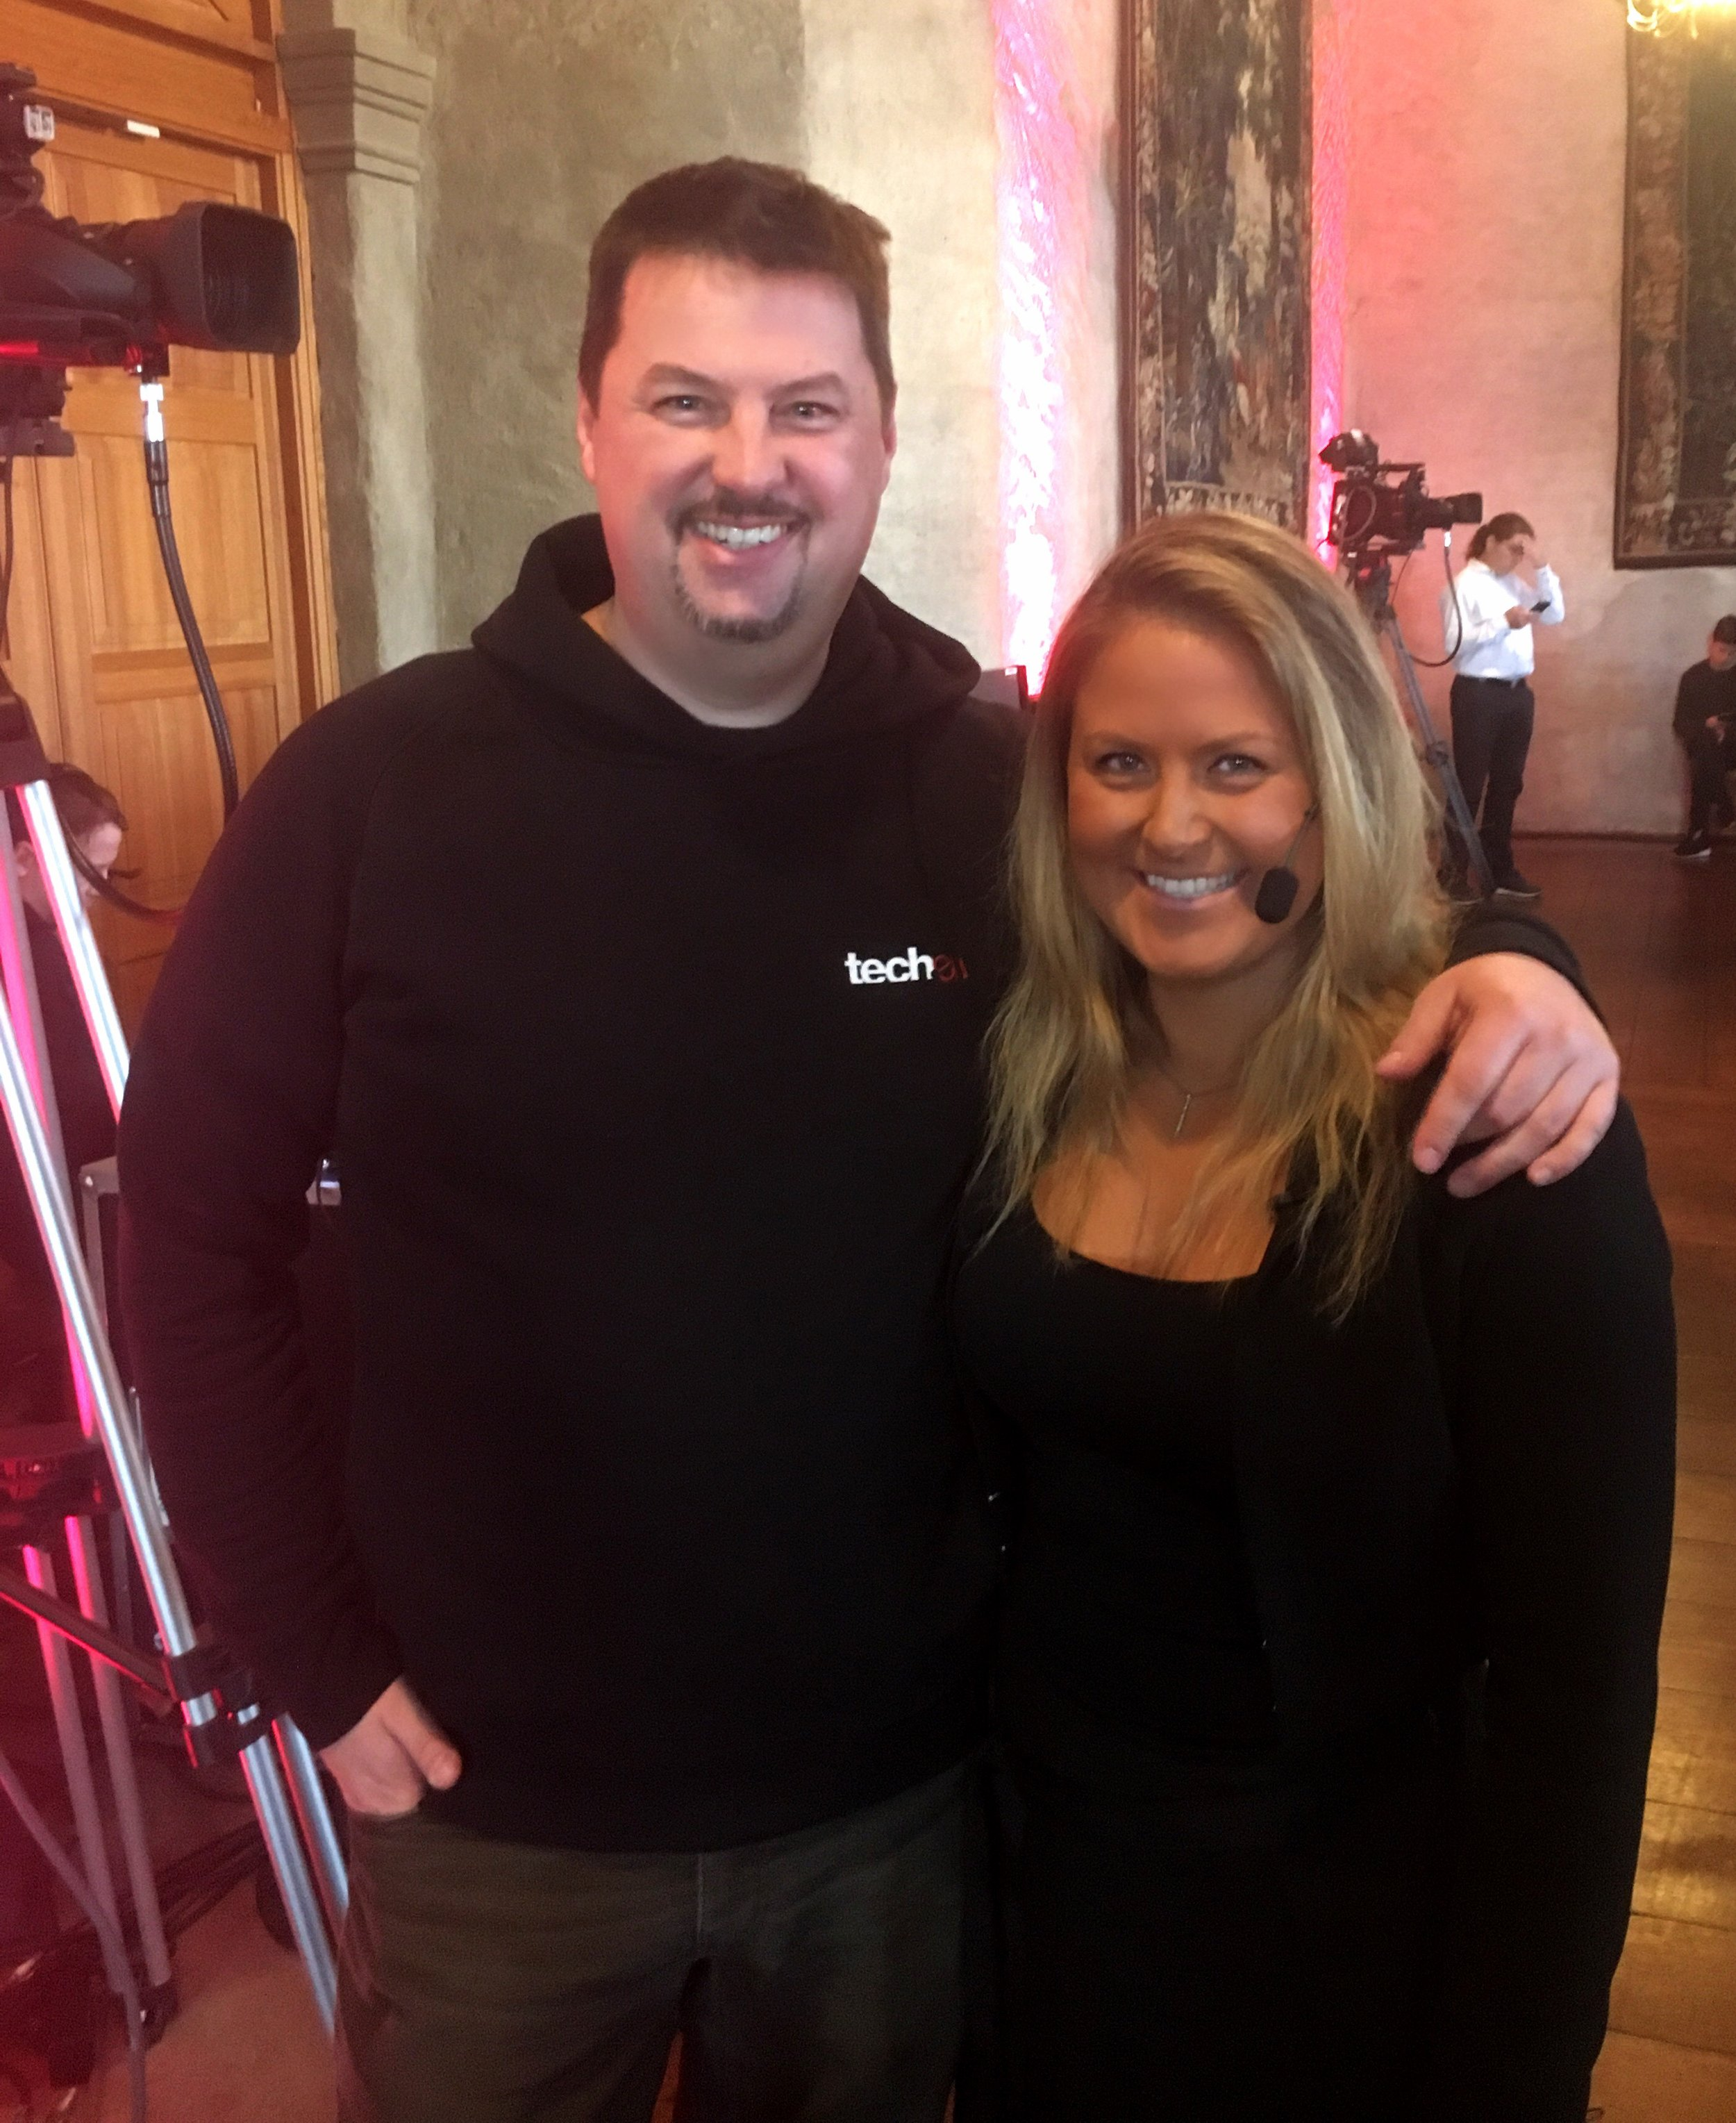 Catching up with the fantastic Robin Wauters from tech.eu before delivering a keynote at Uppstart in the Uppsala castle.